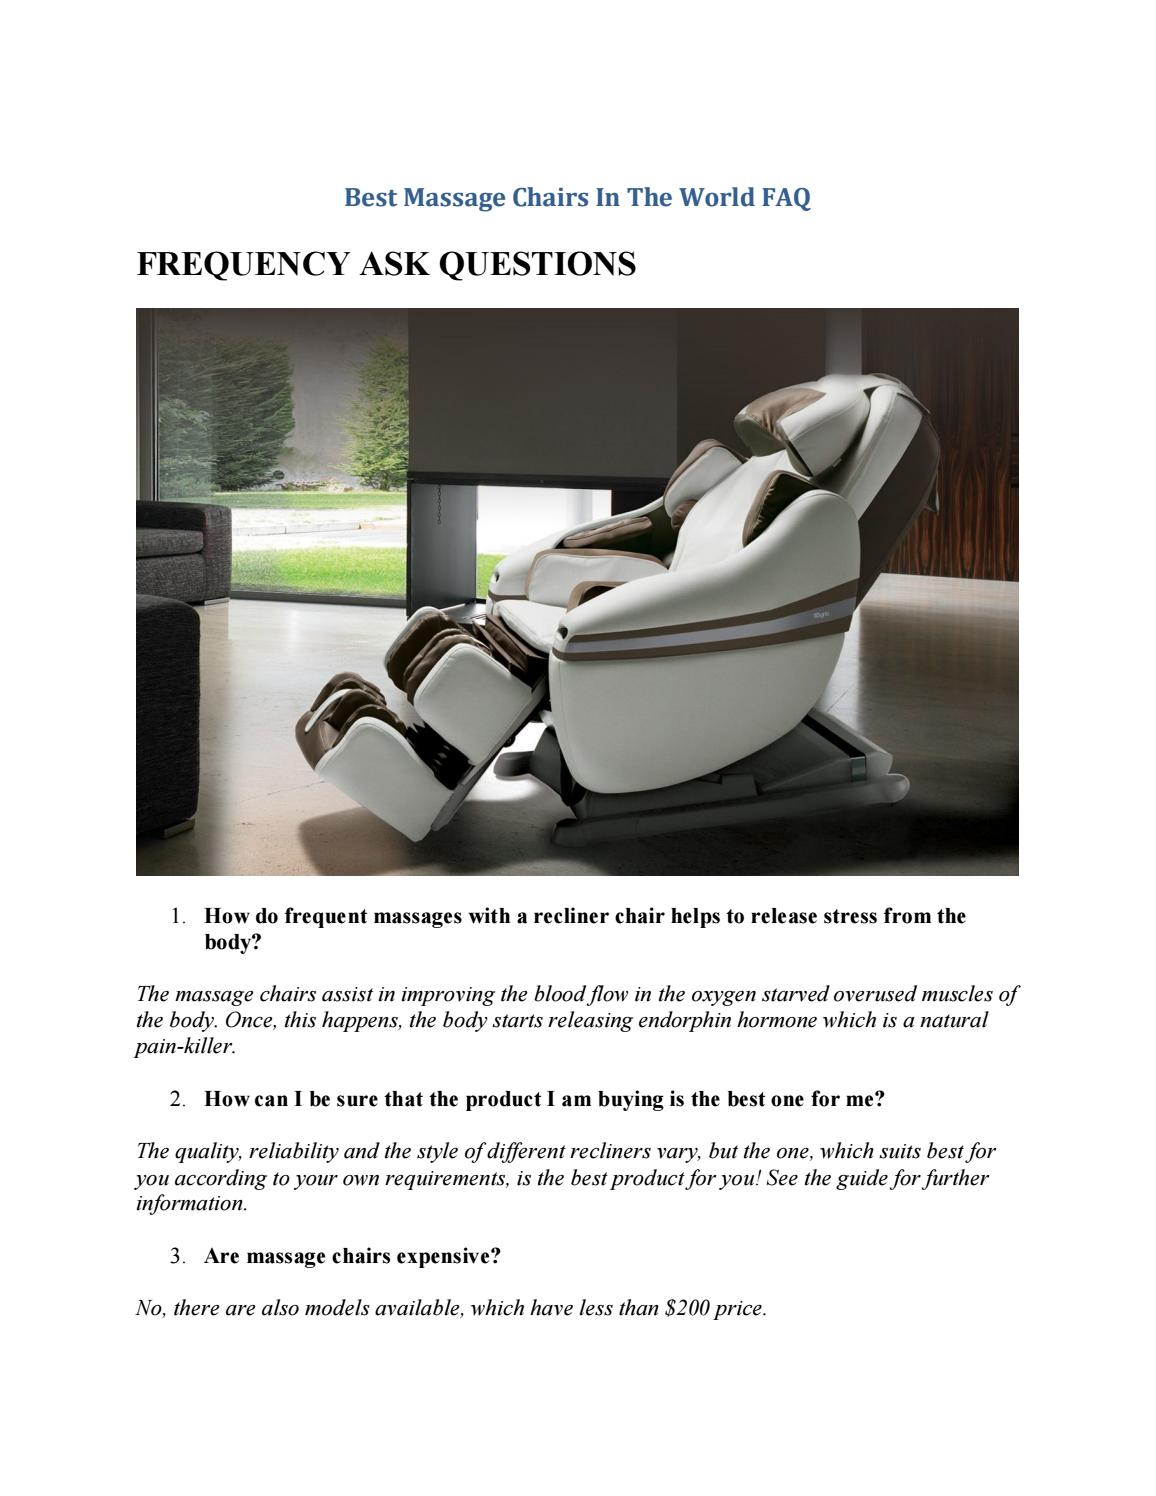 Best Massage Chair In The World Best Massage Chair Shiatsu Zero Gravity By Wellness Geeky Issuu